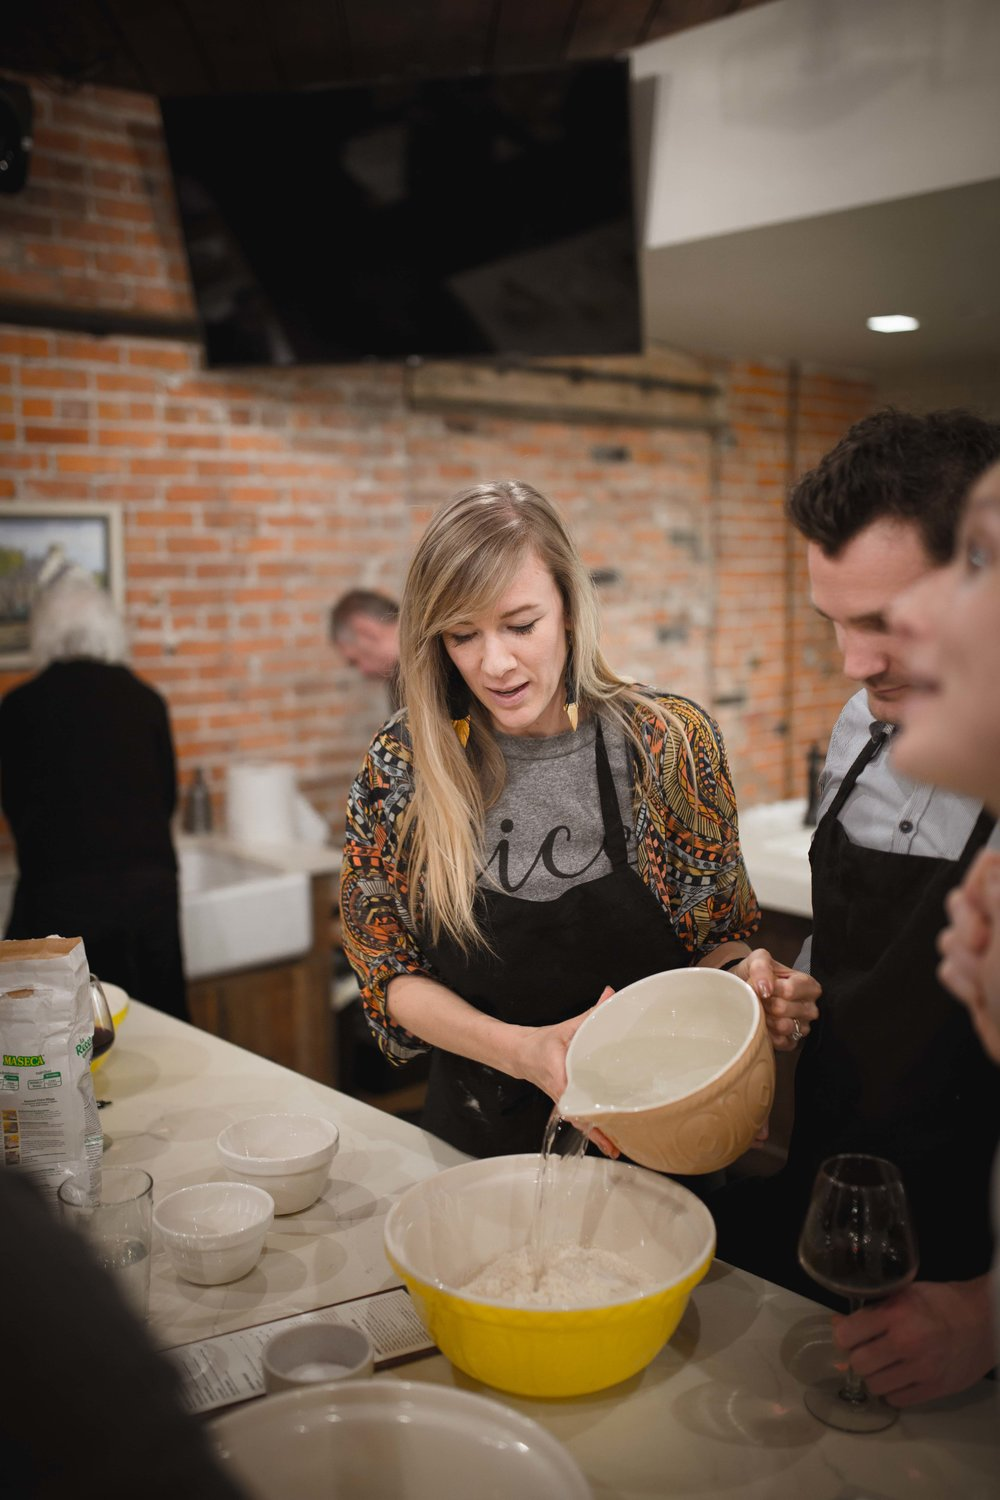 GingerandBaker-JuliyJuan-CookingClass-Feb28-38.jpg